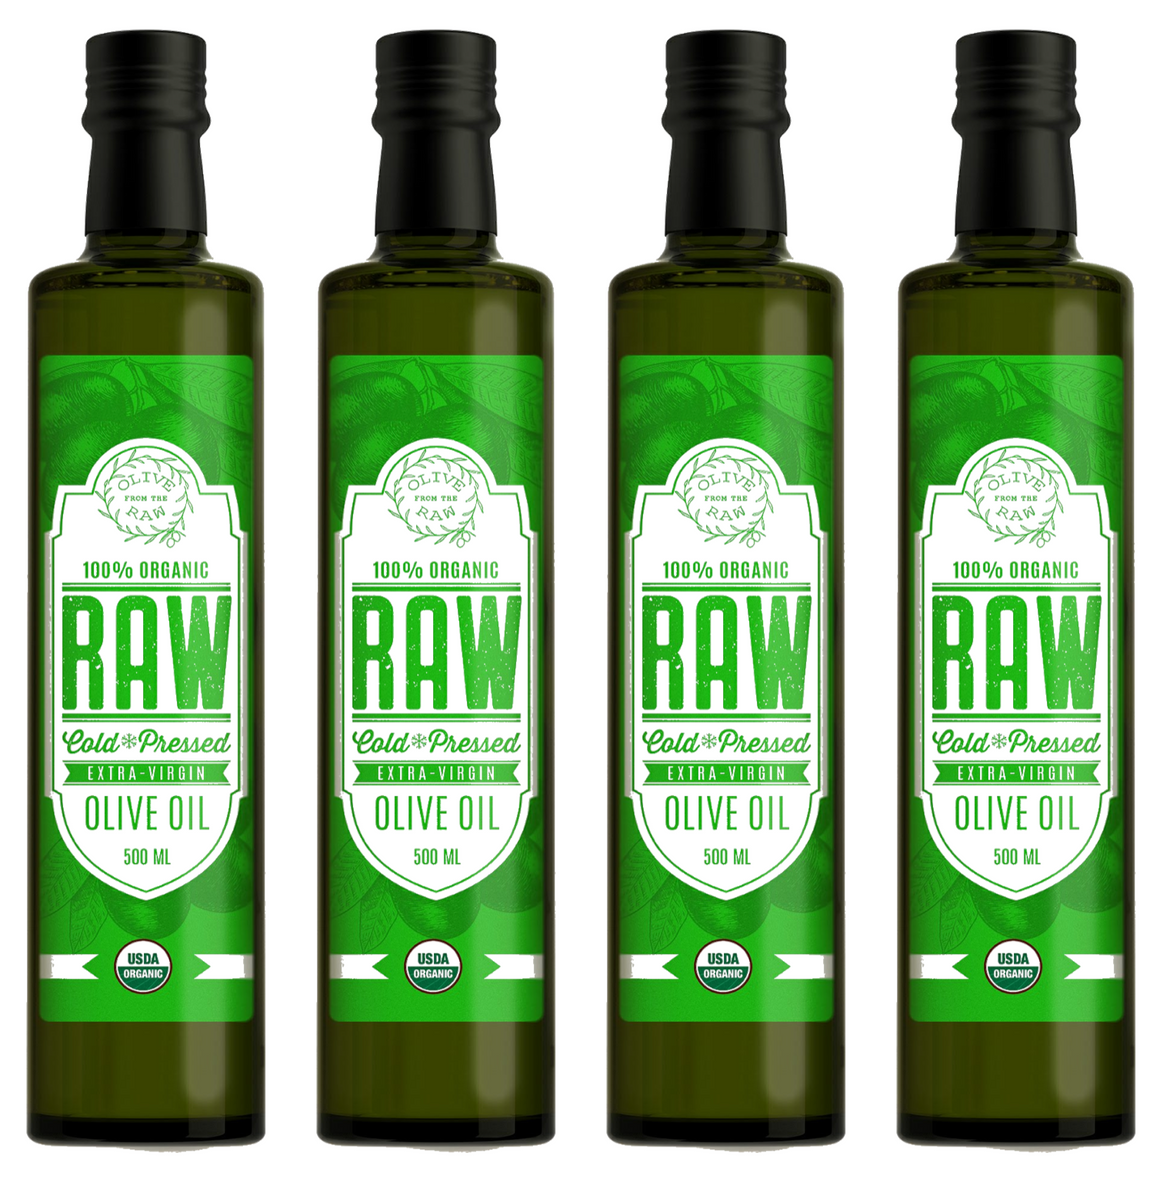 Olive from the RAW  UNFILTERED. High Polyphenols. ORGANIC Extra Virgin Olive Oil. MADE IN ITALY (4 BOTTLES)